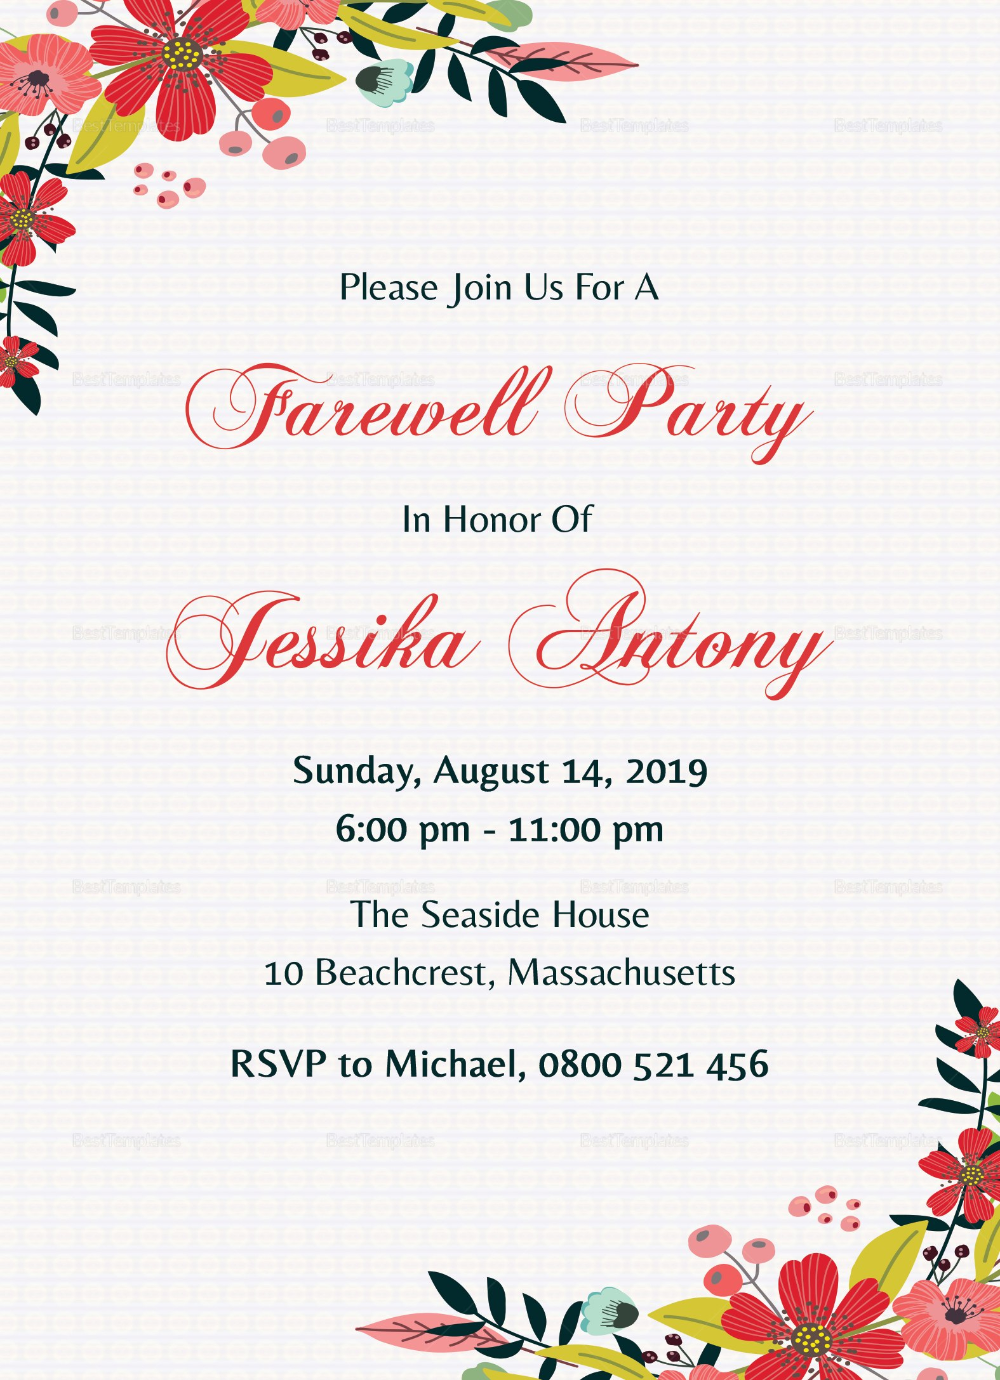 Farewell Invitation Card Template Party Invite Template Farewell Party Invitations Farewell Invitation Card